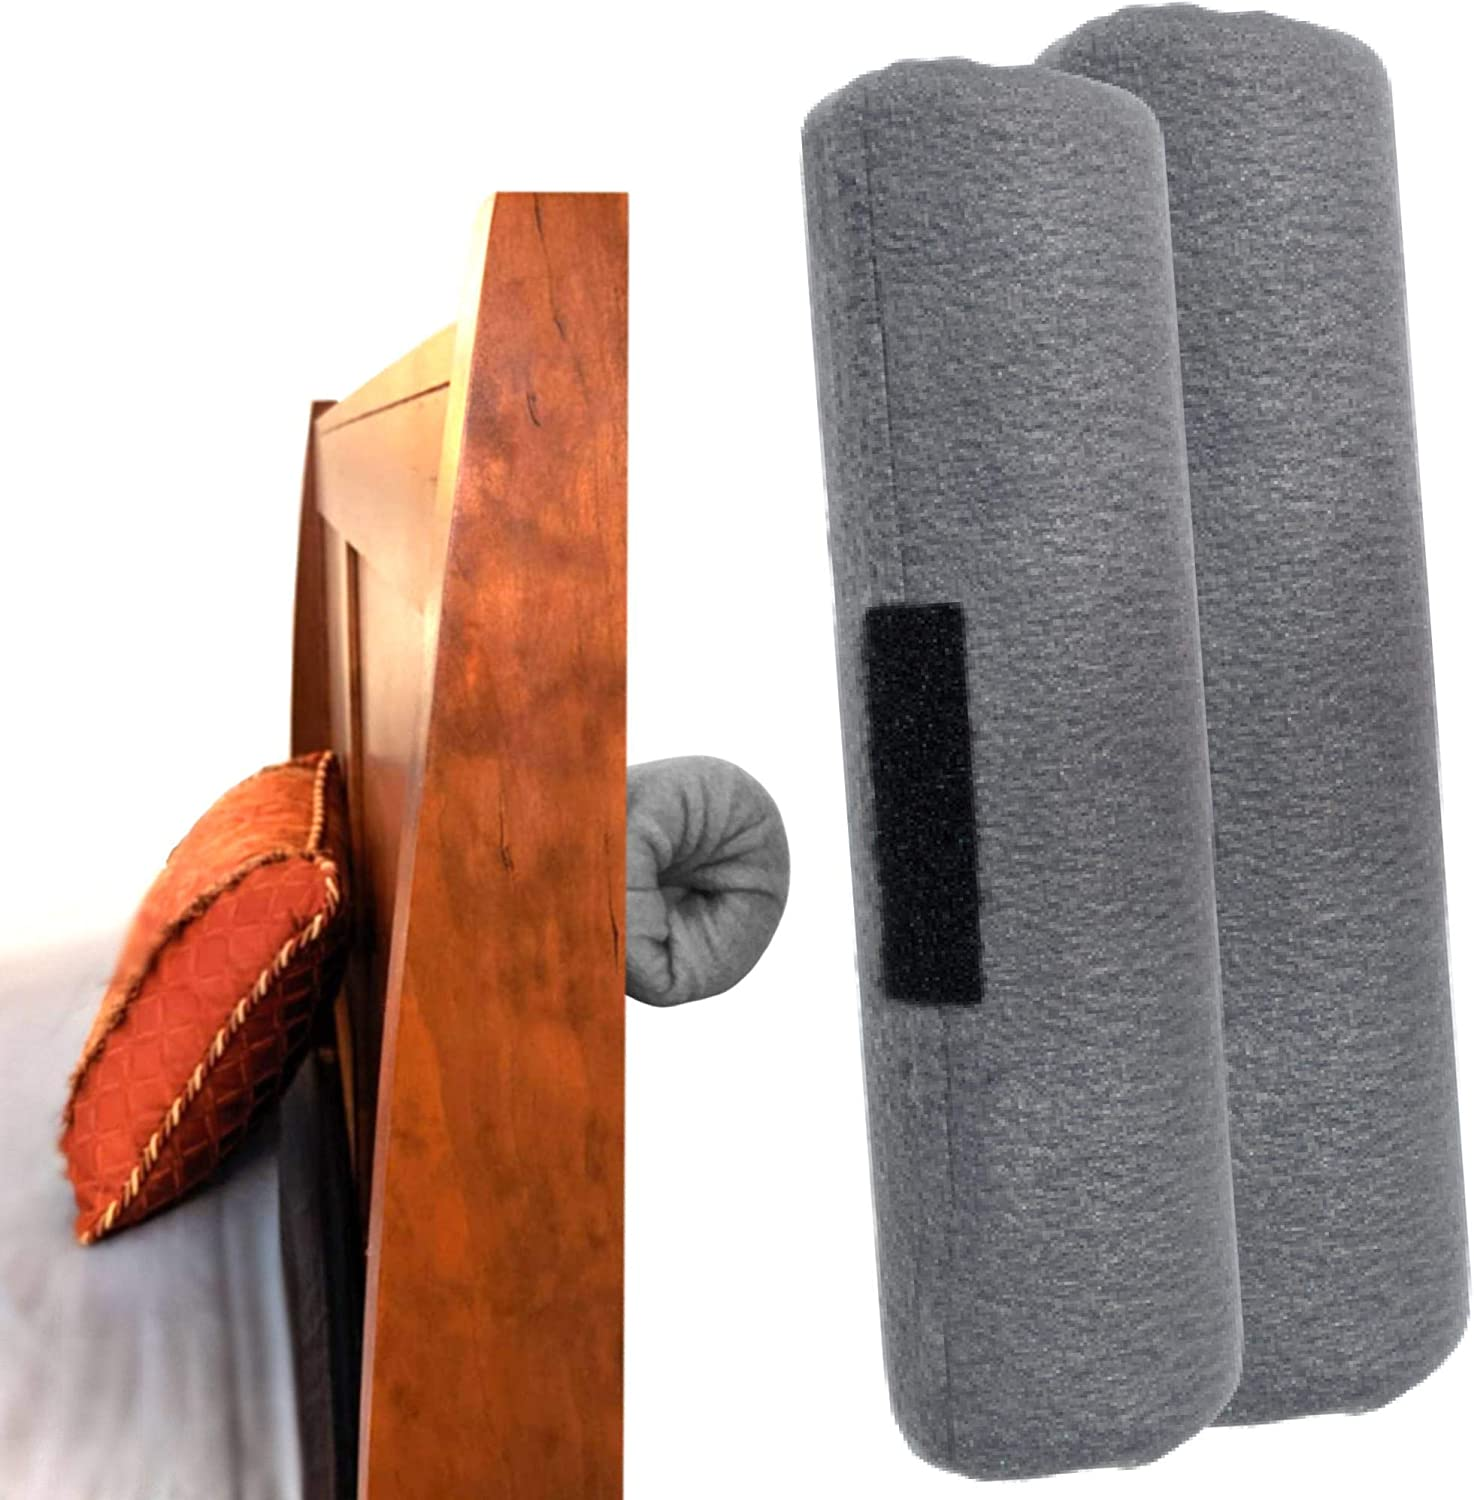 Designs by PJ Headboard Bumper for Wall - Headboard Stabilizer No Screws No Holes No Mess - Soft Headboard Pad for Wall - Wall Protector from Furniture Chair Back - Bed Frame Stoppers for Wall -2 Pack